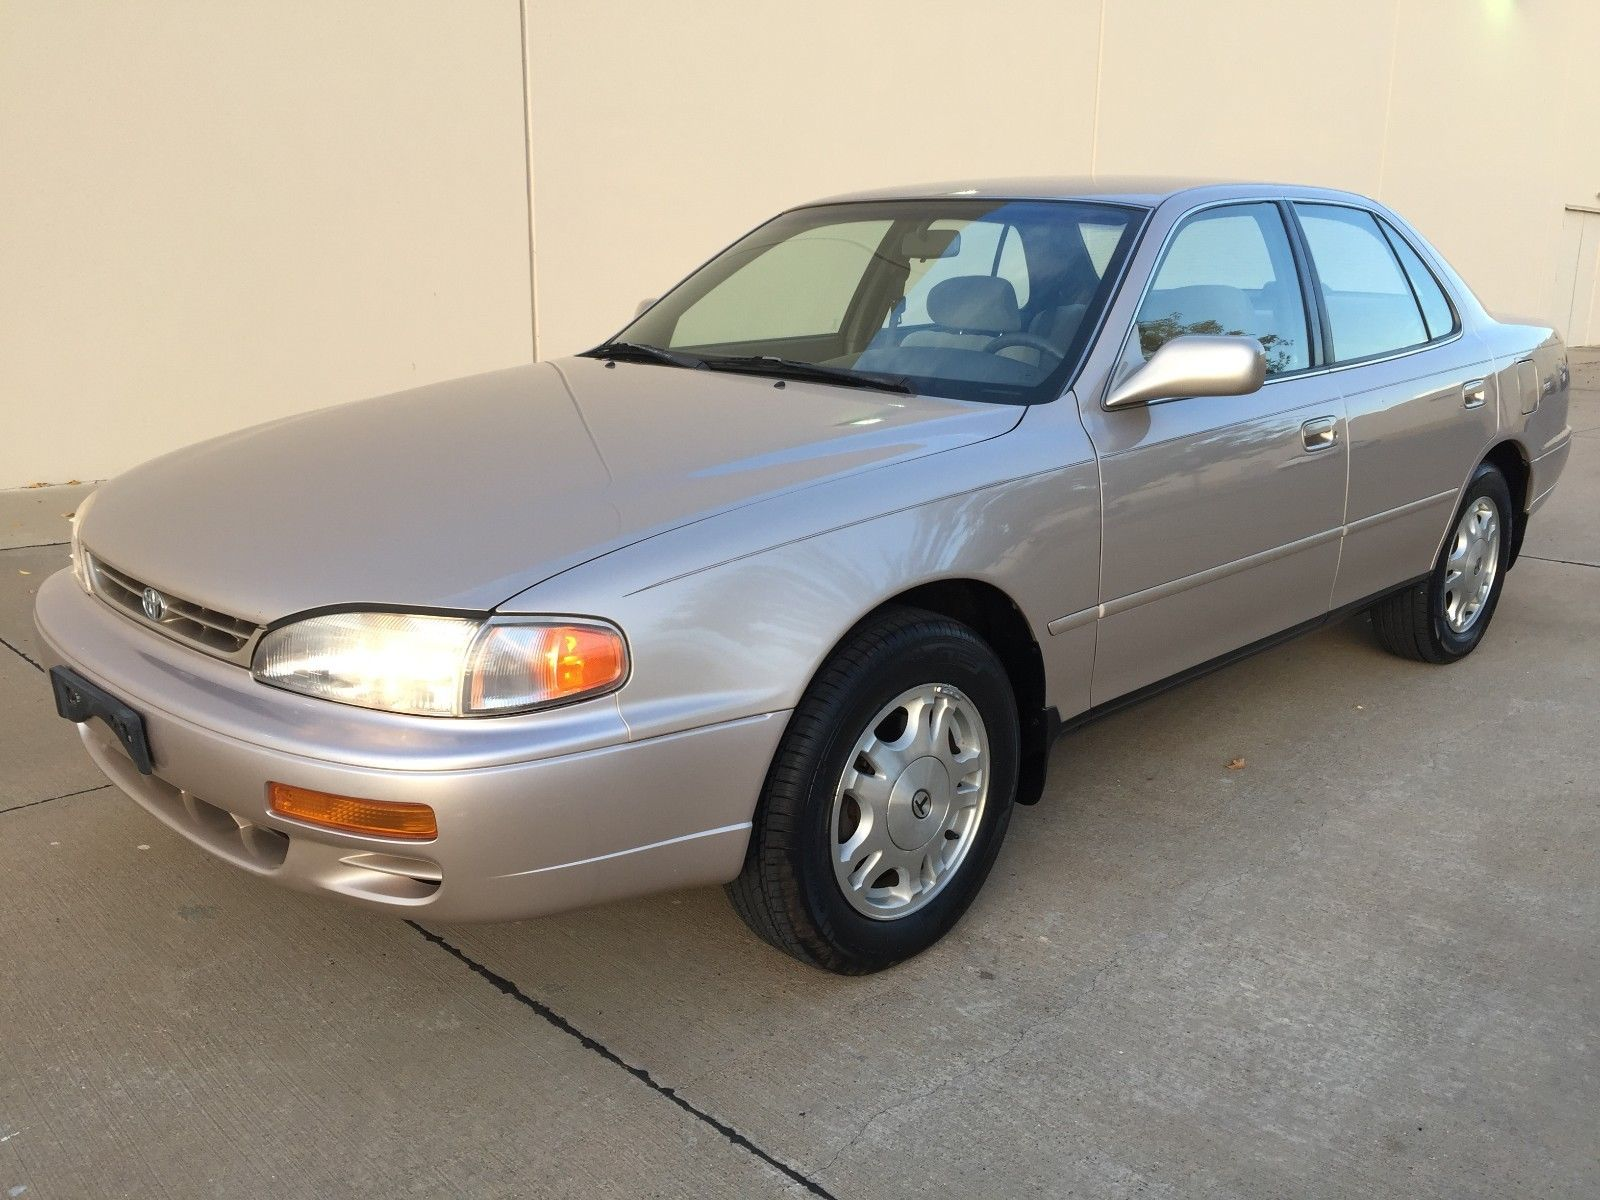 1996 toyota camry le 1996 toyota camry le v6 with only 70k original miles mint condition 75 pics 2017 2018 mycarboard com mycarboard com